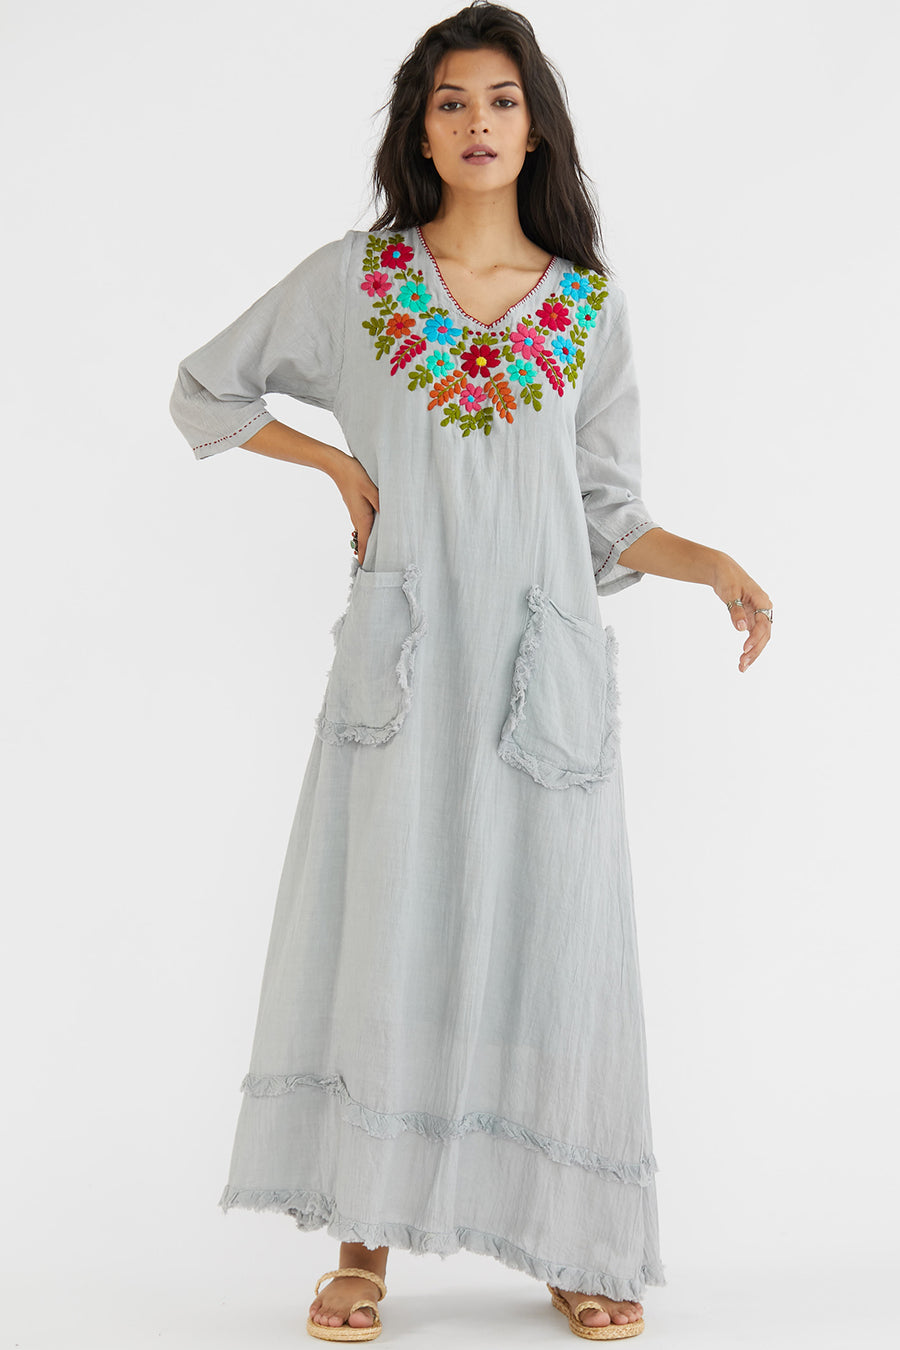 Embroidered Dress Kaftan Alice  K